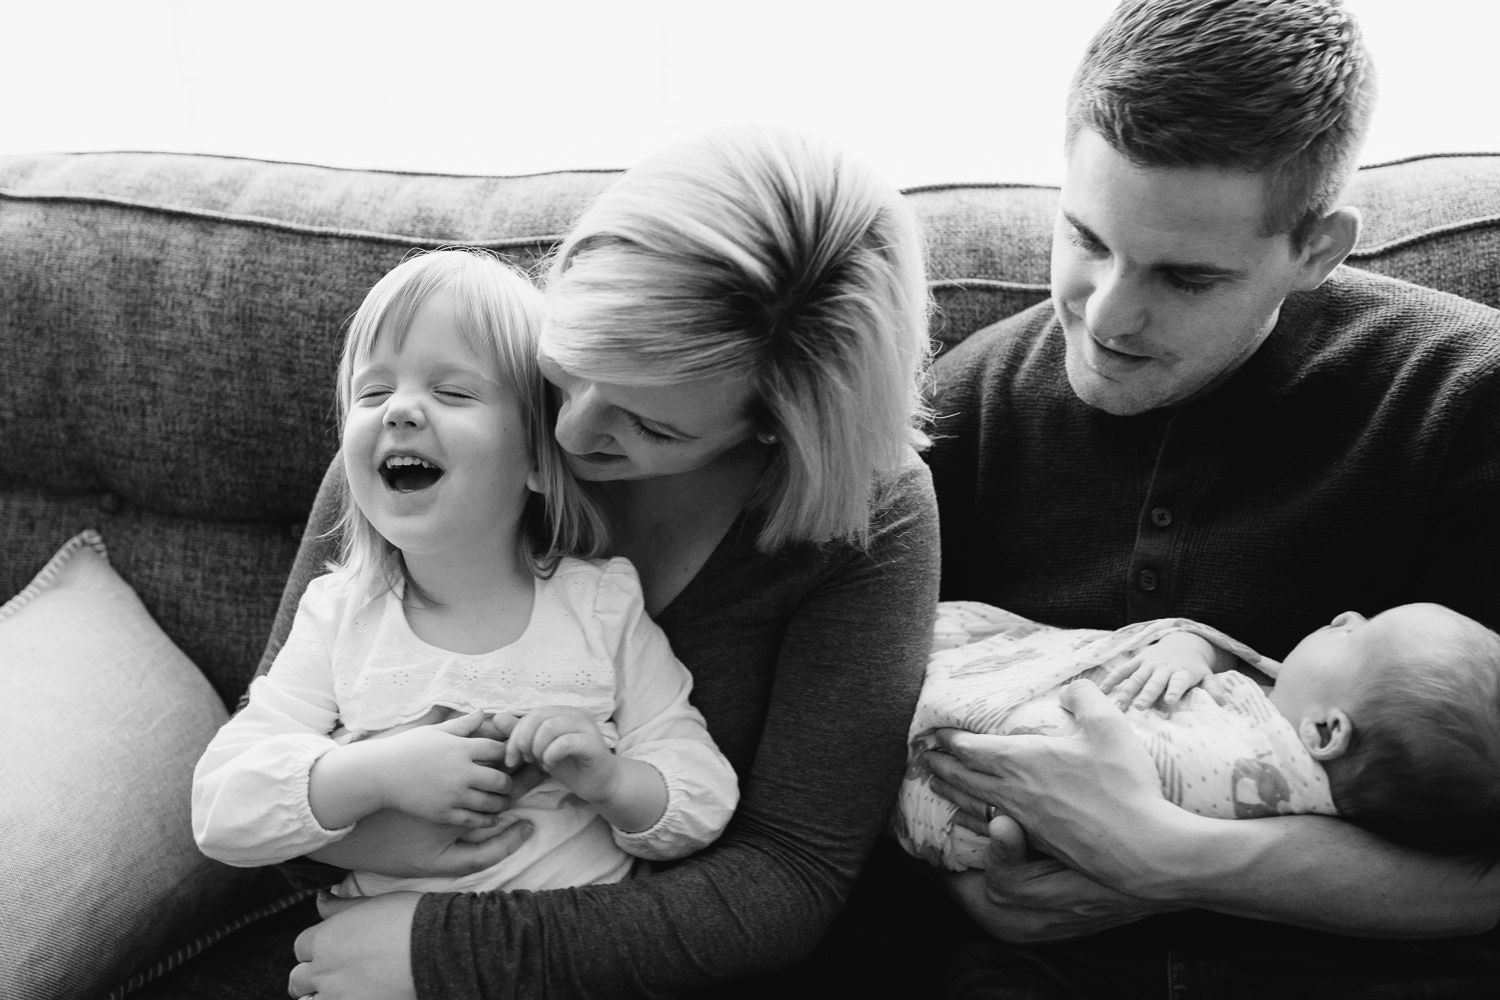 - family of four smiling together on a living room couch, 2 week old baby boy in dad's arms, toddler girl in mom's lap, daughter laughing as mother hugs her - Newmarket Lifestyle Photography